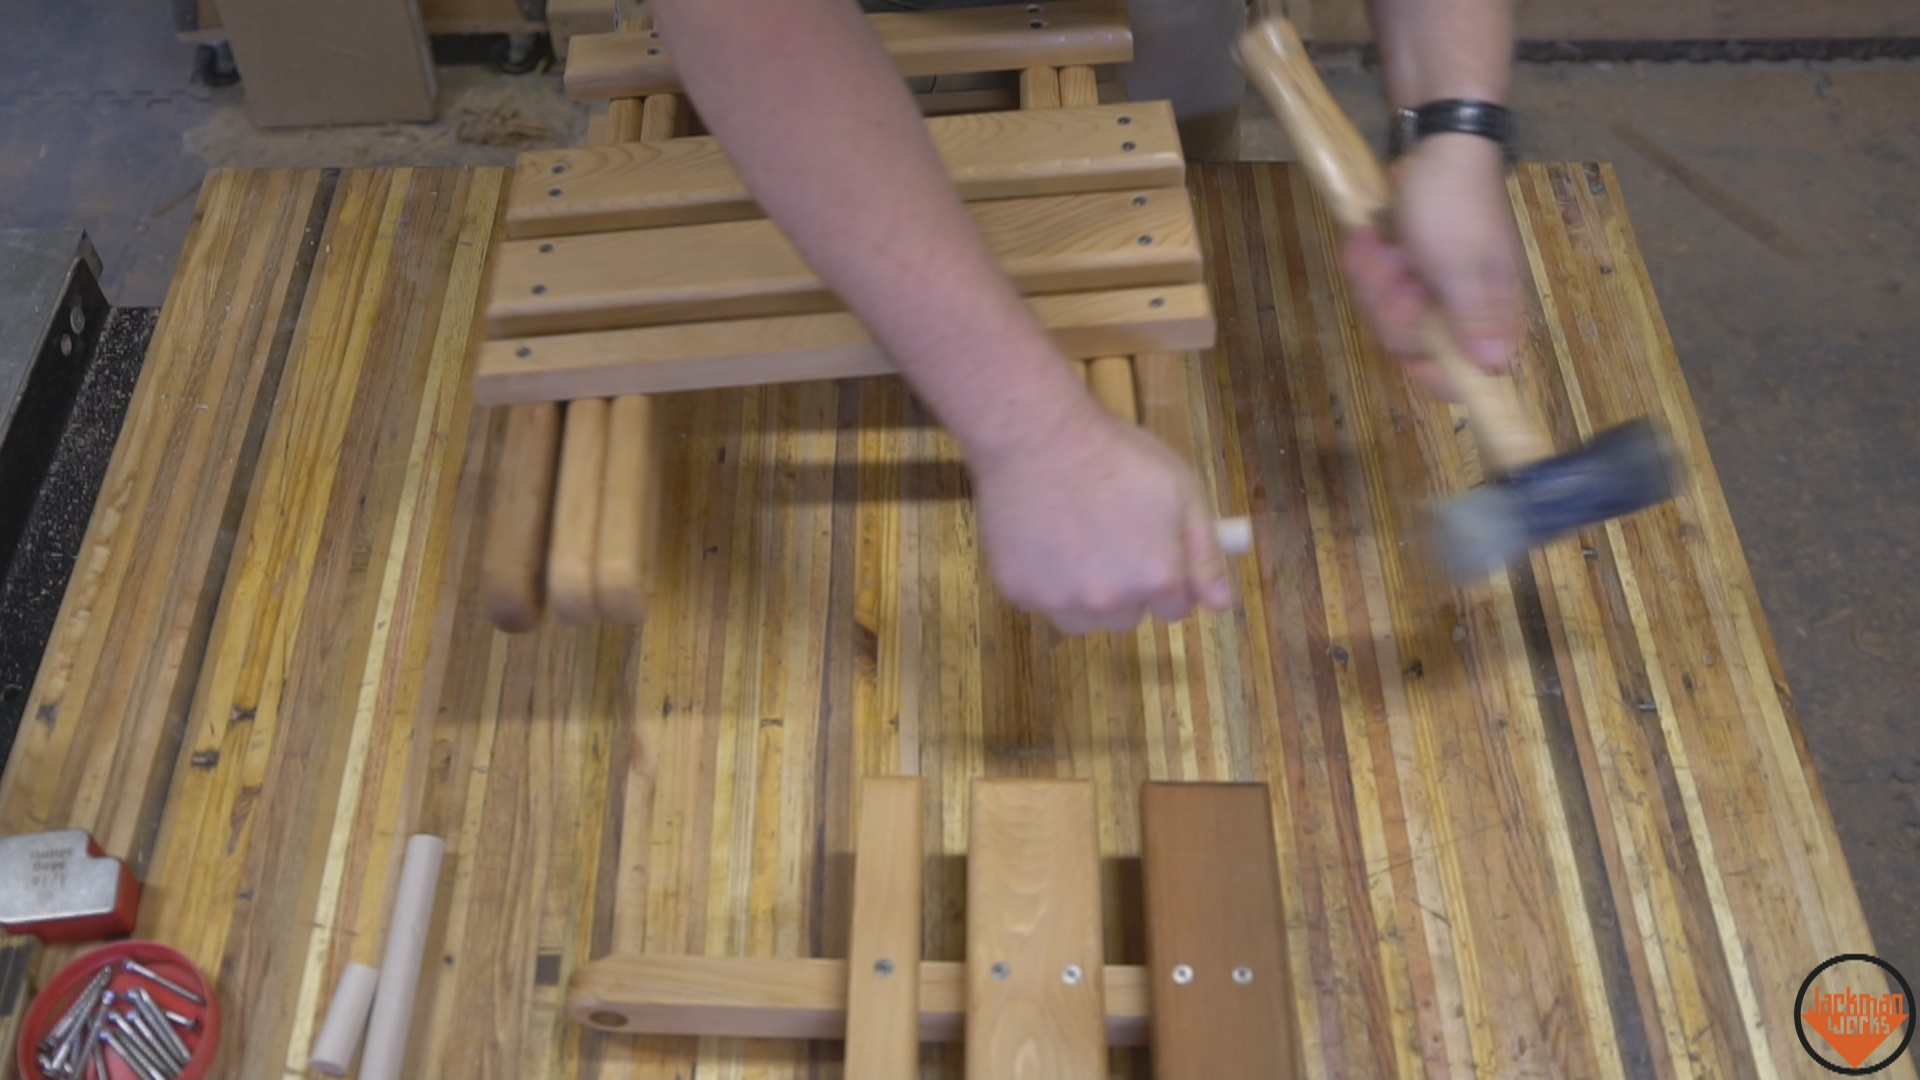 Collapsible Folding Adirondack Table 5 Steps With Pictures Instructables